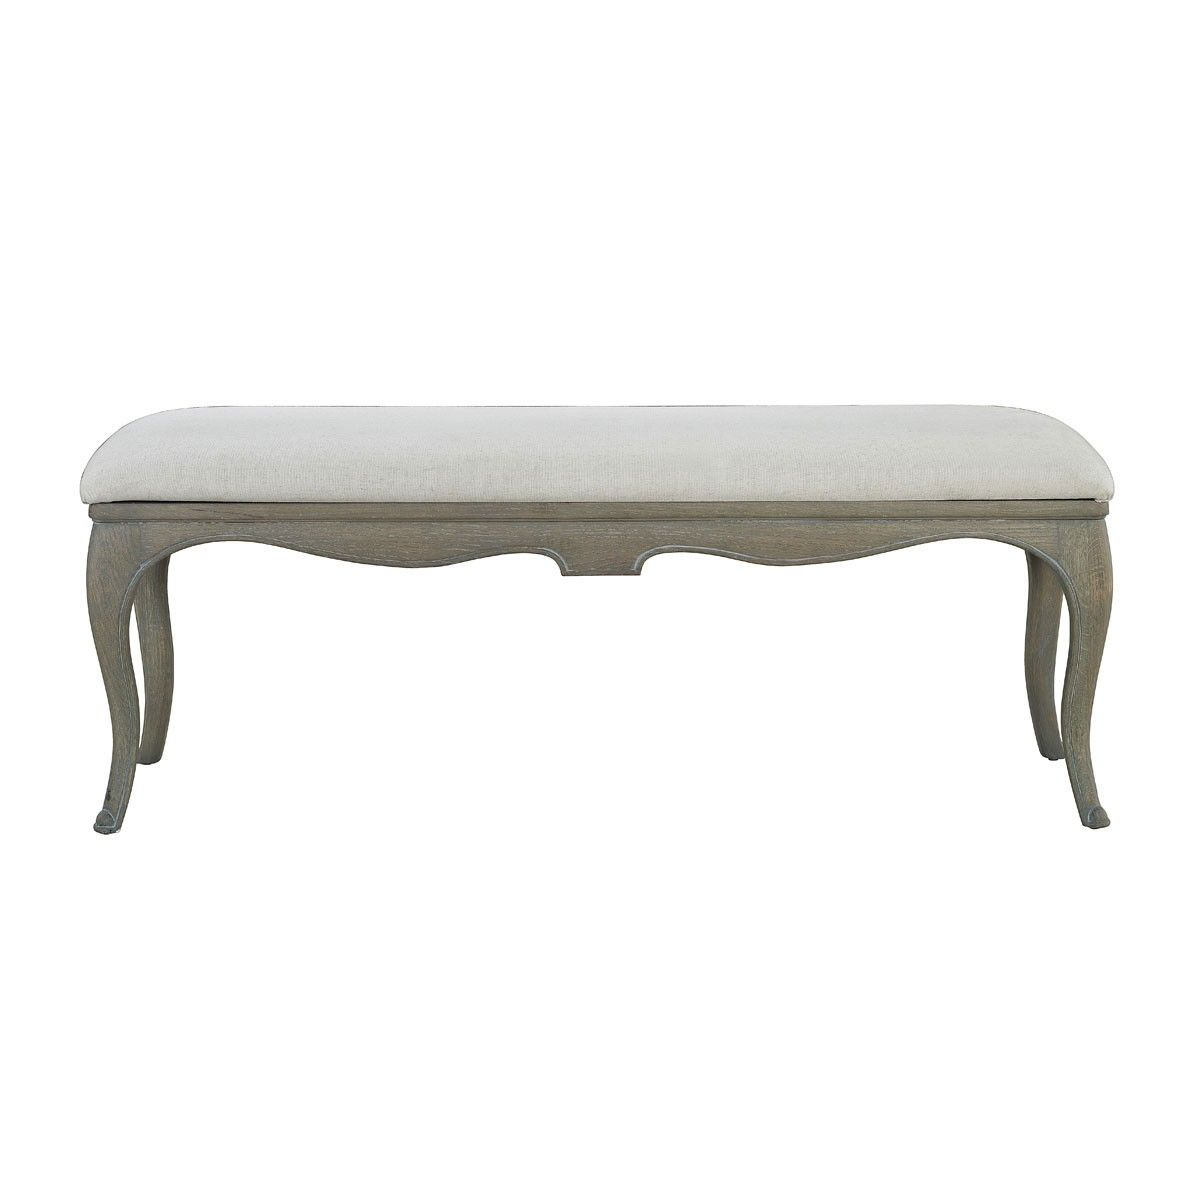 Miraculous Camille French Style Weathered Oak Bed End Stool Bed End Andrewgaddart Wooden Chair Designs For Living Room Andrewgaddartcom